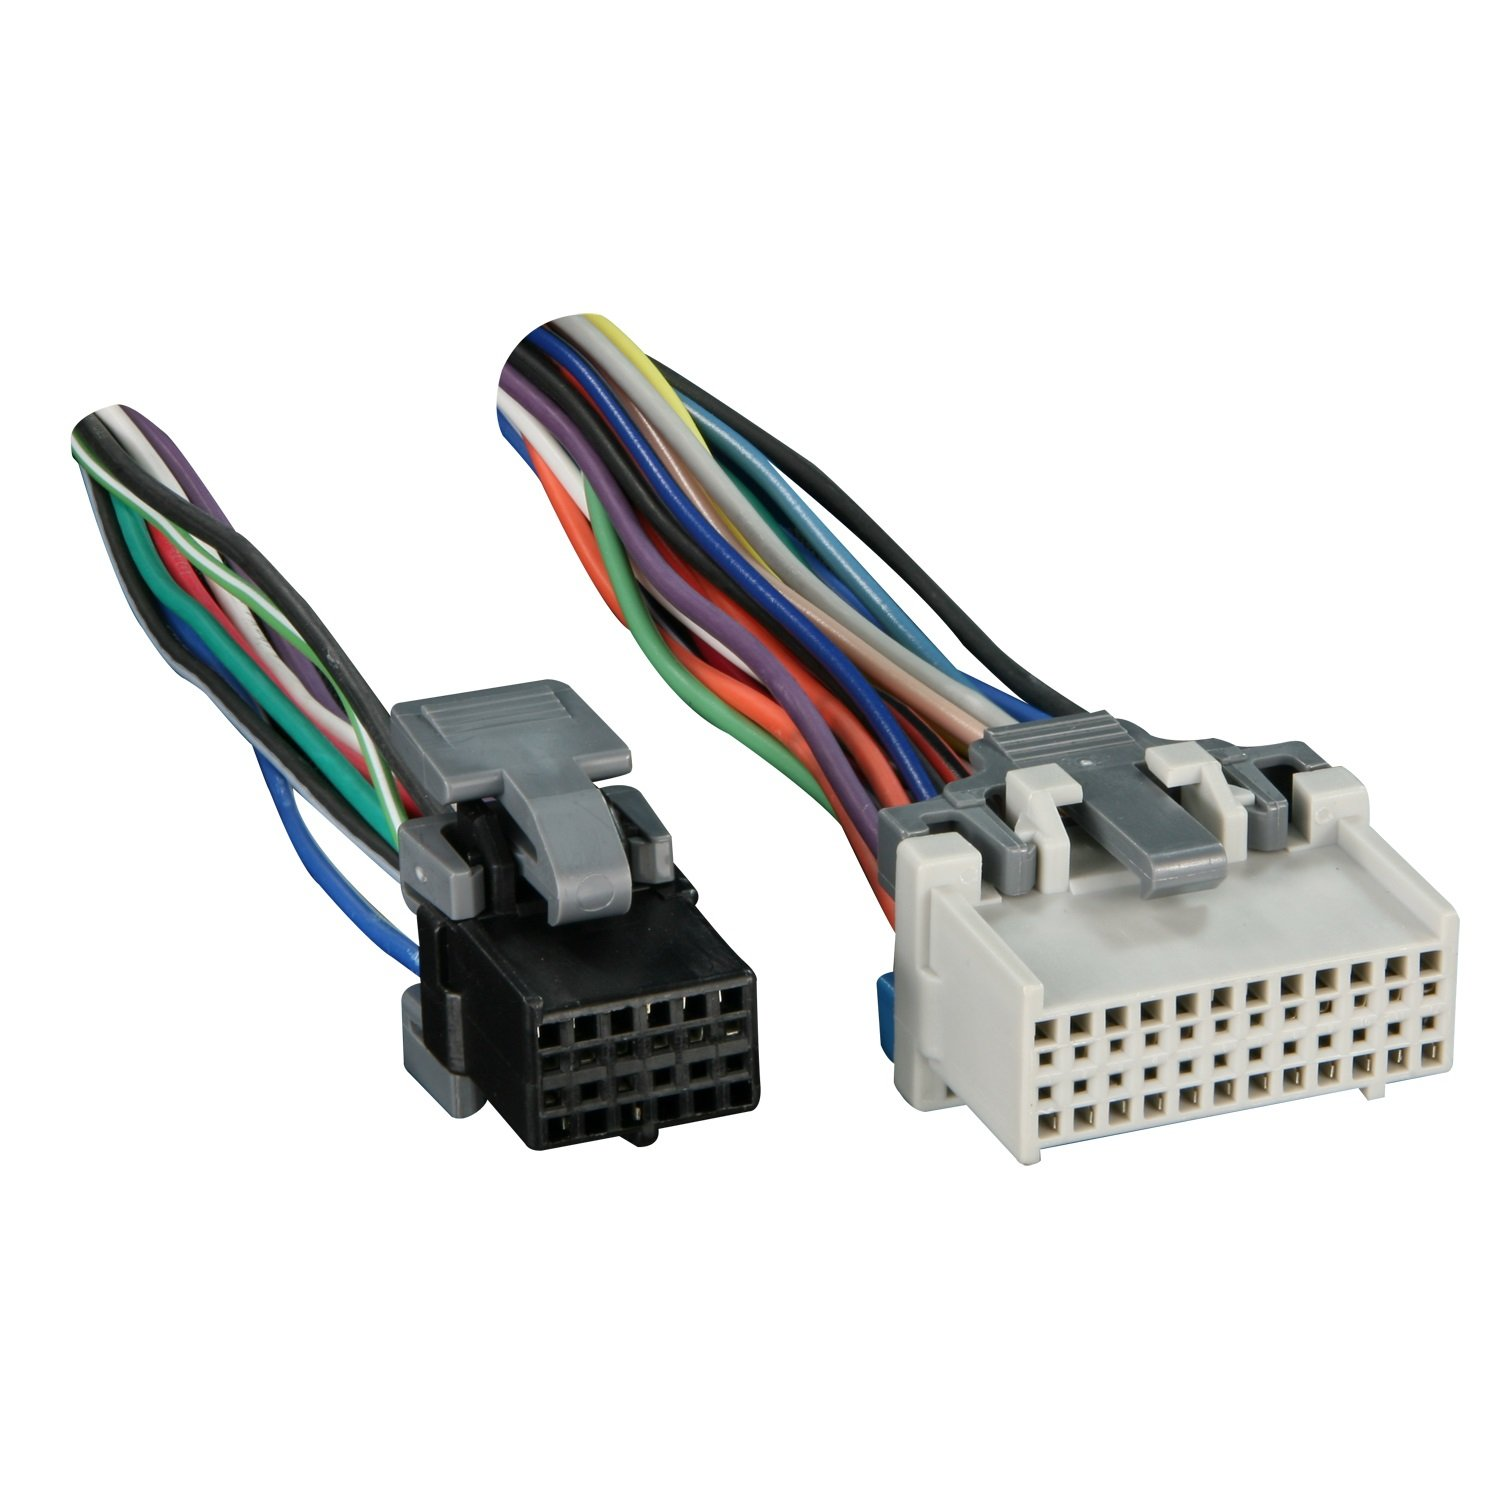 711log4bdML._SL1500_ amazon com metra turbowires 71 2003 1 wiring harness car electronics what is a wire harness in a car at bayanpartner.co